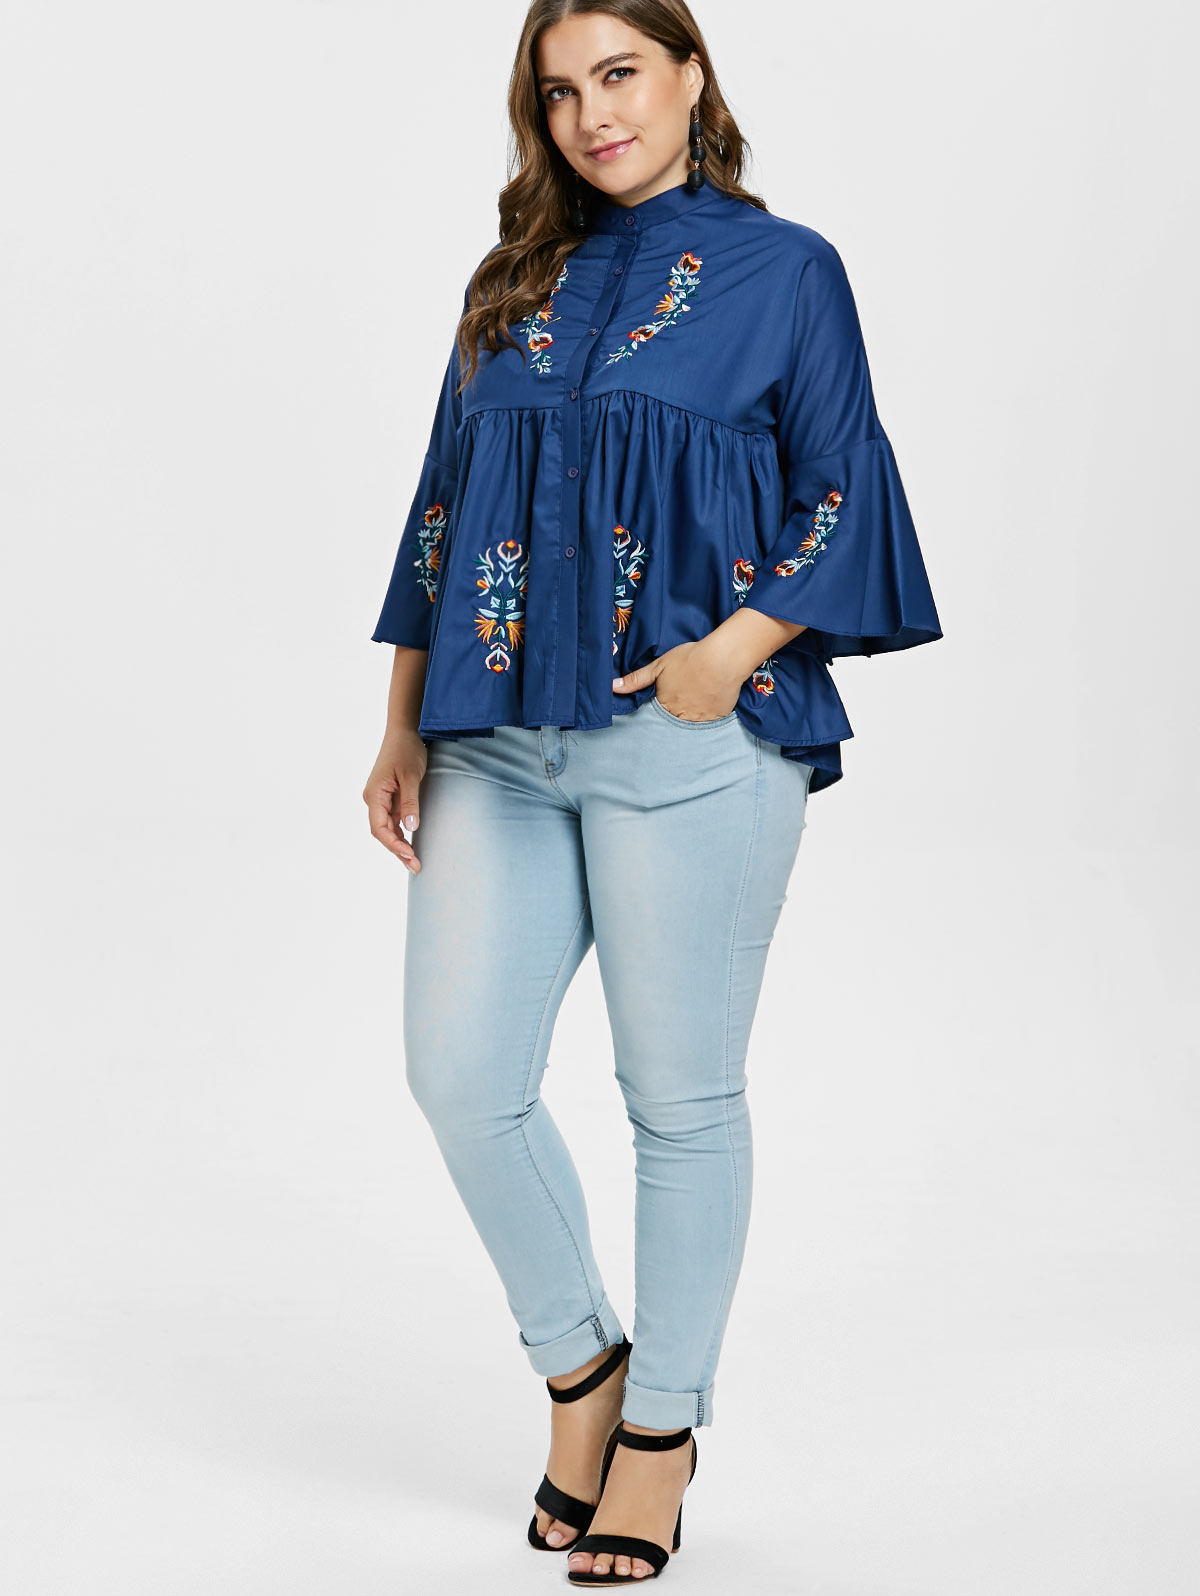 2bb7a32216 US $16.65 45% OFF Wipalo Plus Size 5XL Empire Waist Floral Embroidery  Blouse Casual Denim Blue Stand Up Collar Flare Sleeve Blouse Fall Women  Top-in ...